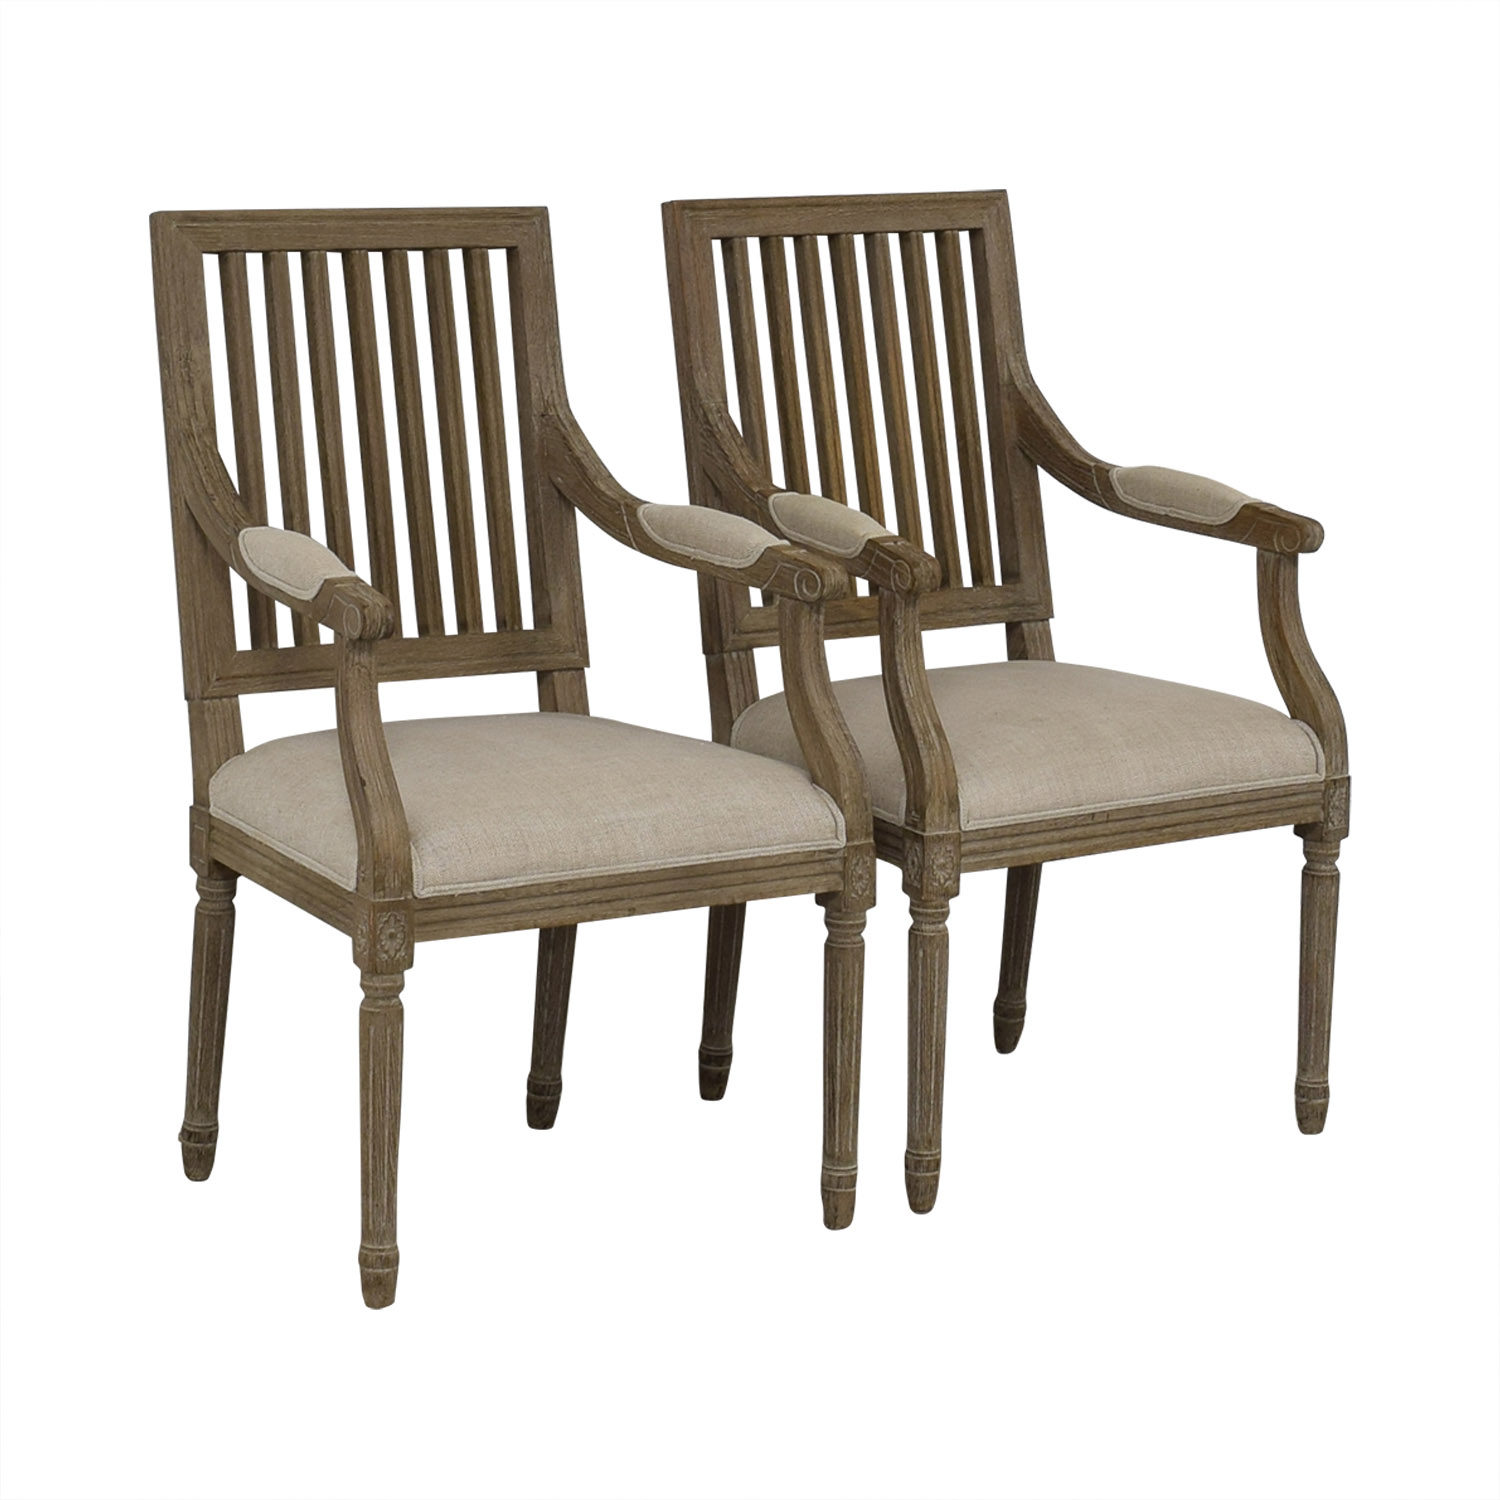 buy Restoration Hardware Restoration Hardware Spindle Back Dining Chairs online